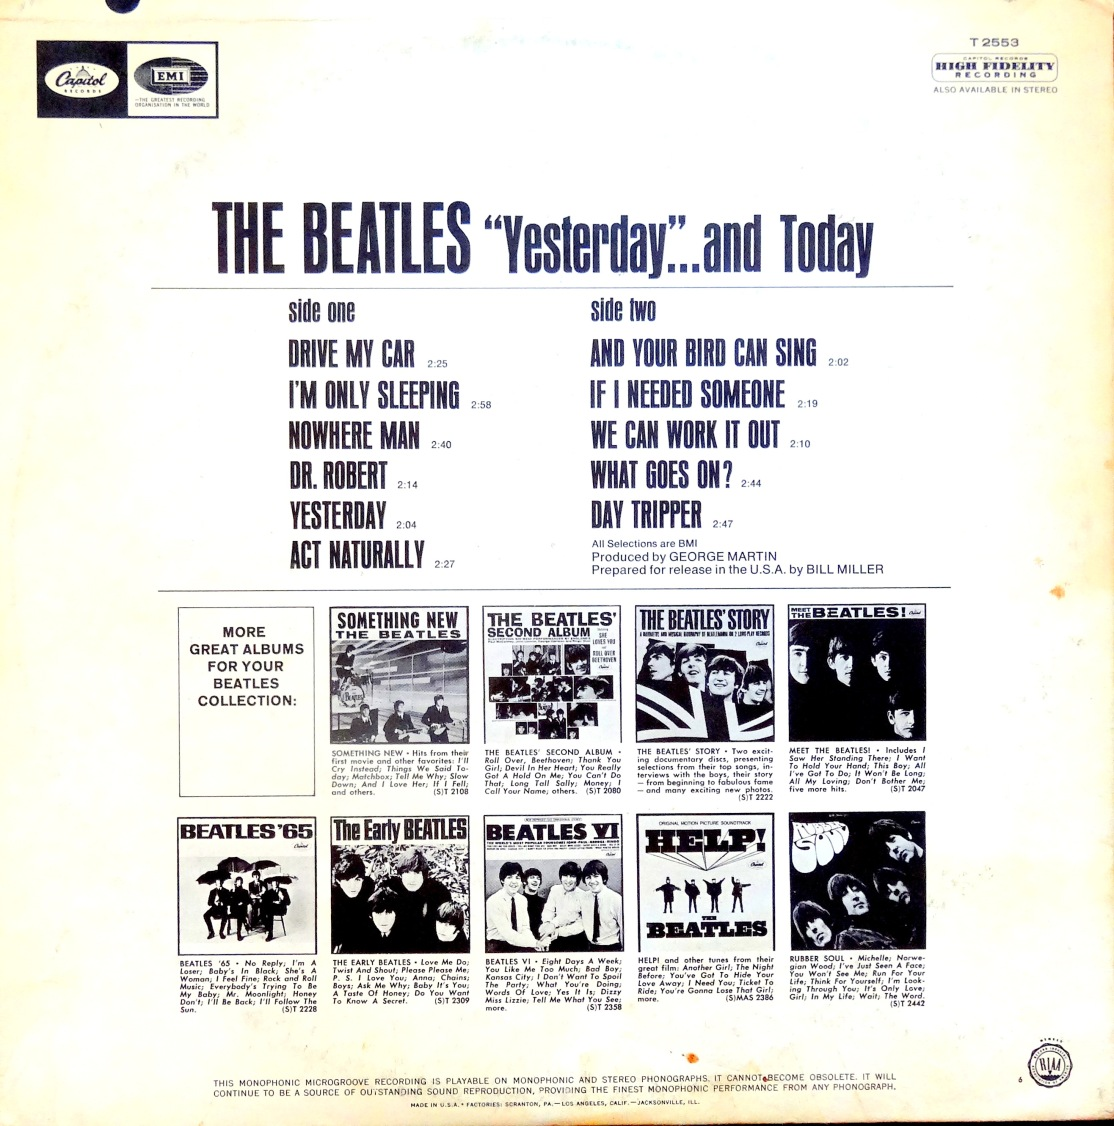 Beatles Yesterday and Today back